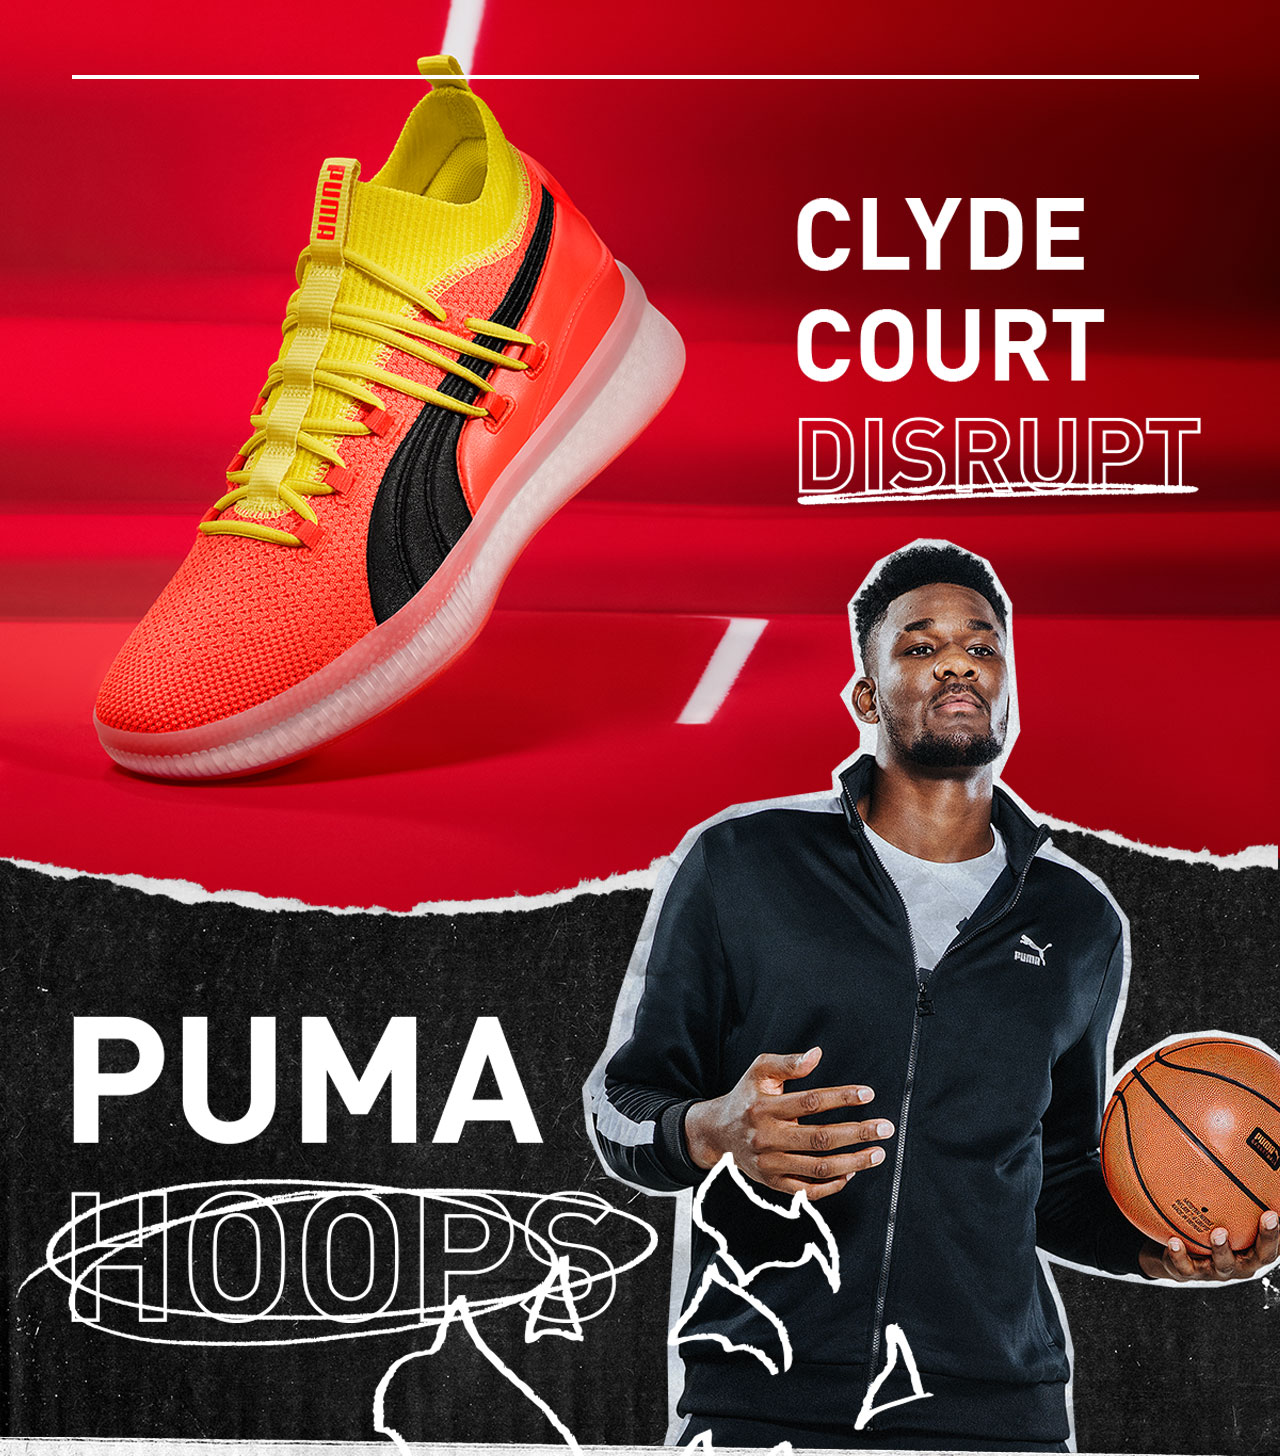 e599b6a8981b Make those moves in the Clyde Court Disrupt. Don t flinch. Clyde Court  Disrupt Basketball Shoes